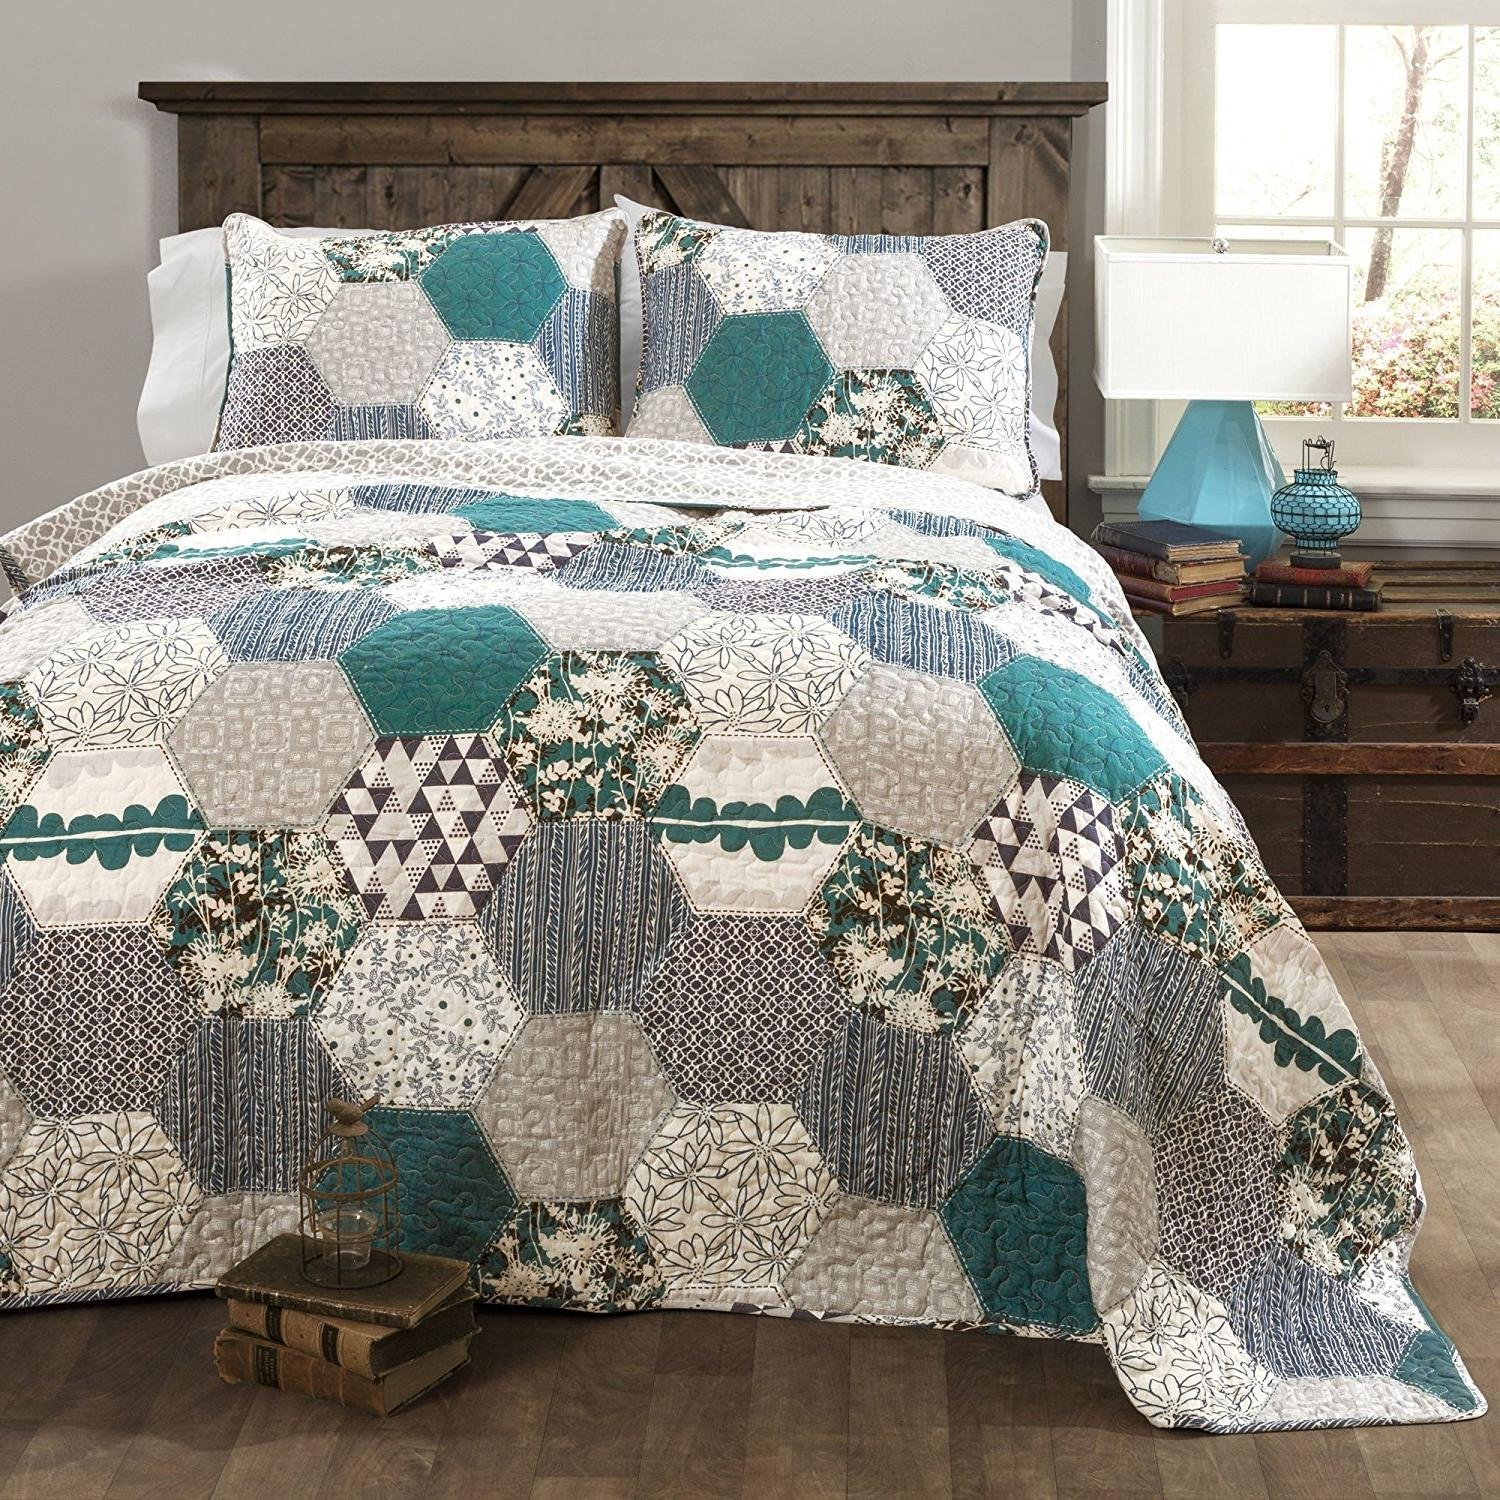 MISC 3pc Blue Floral Patchwork Full Queen Size Quilt, Gray White Octagon Shape Zig Zag Geometrical Grey Stripes, Cotton, Teal Geometric Striped Flower Design